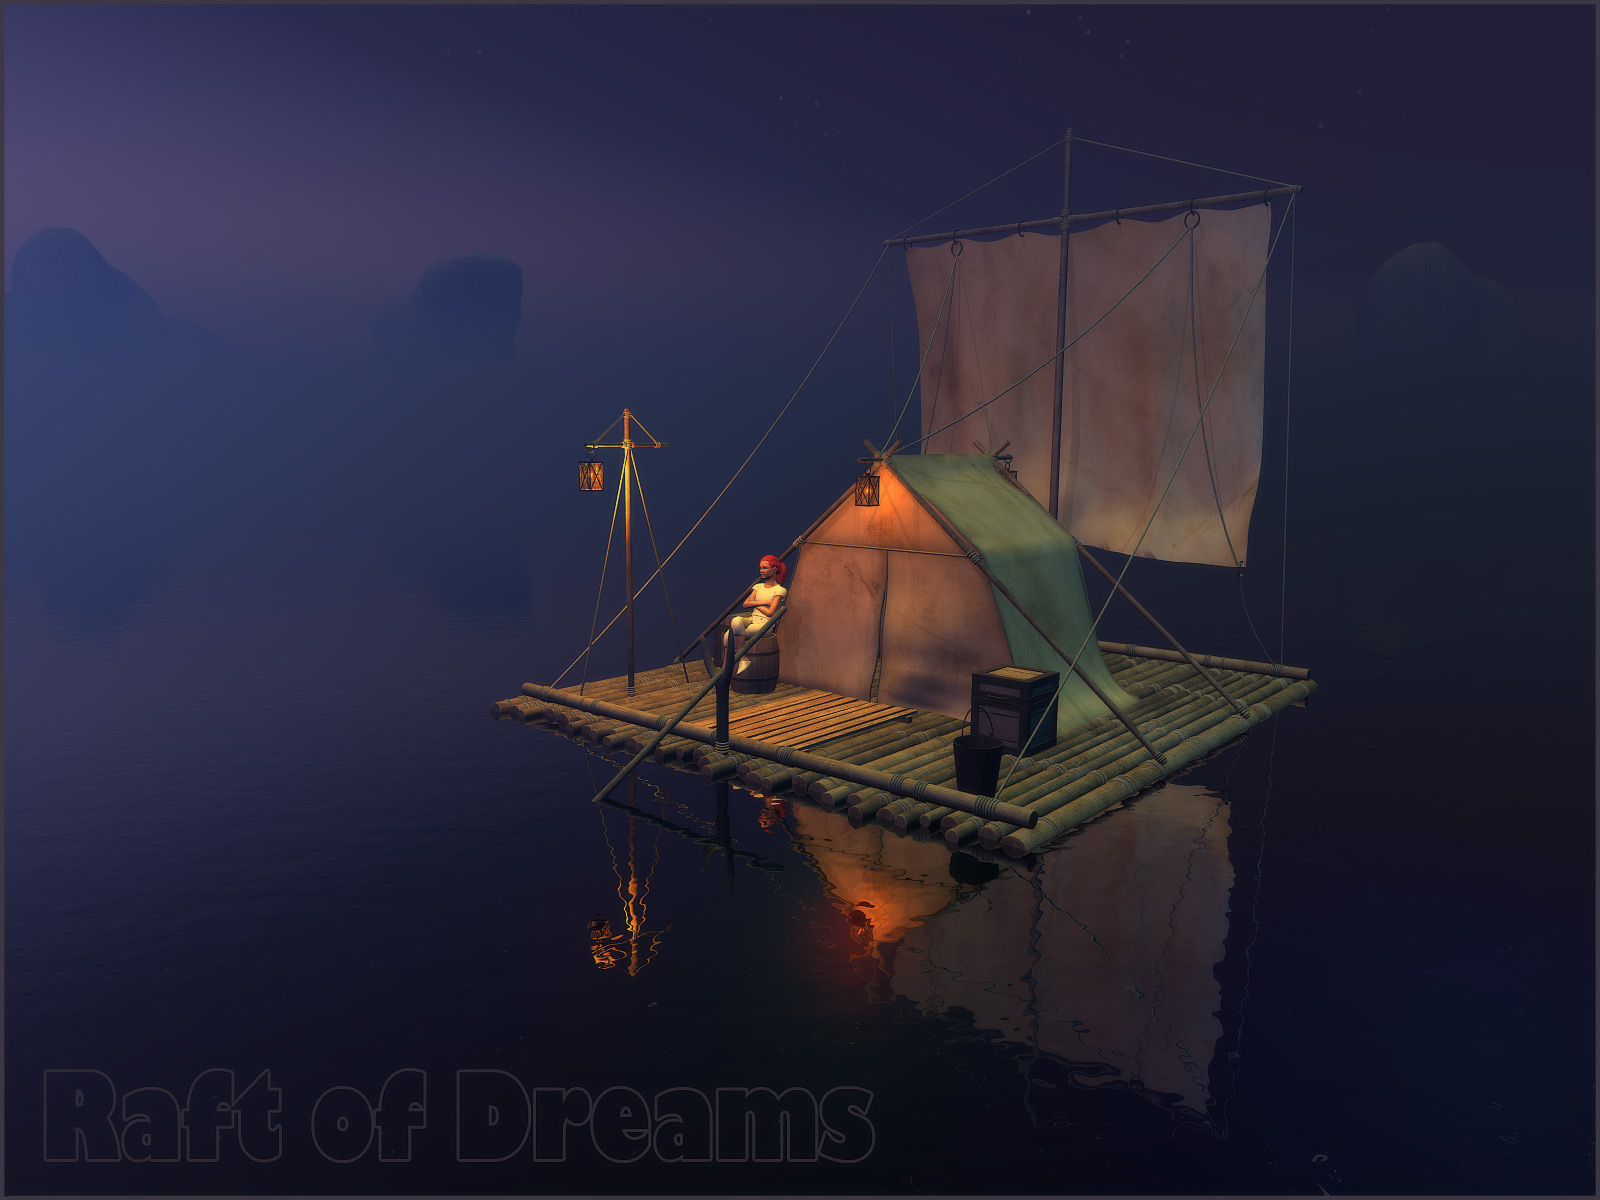 Raft of Dreams